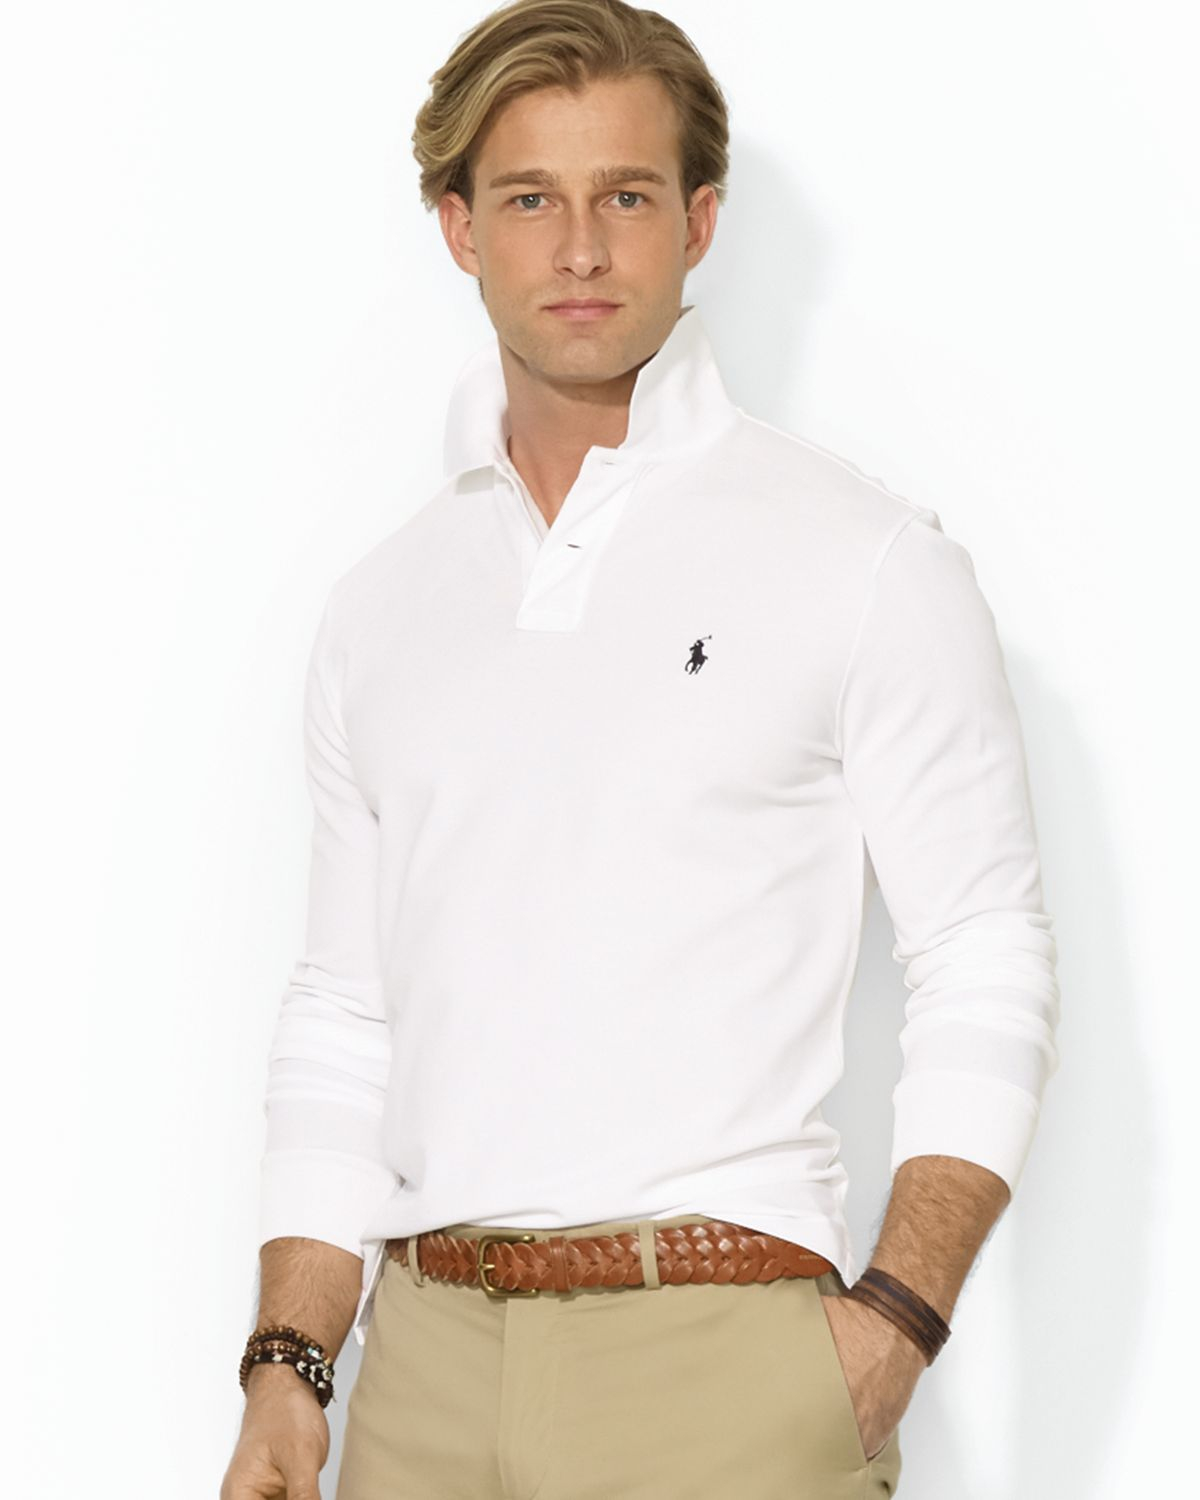 Lyst ralph lauren polo custom longsleeved stretchmesh for Slim fit collared shirts